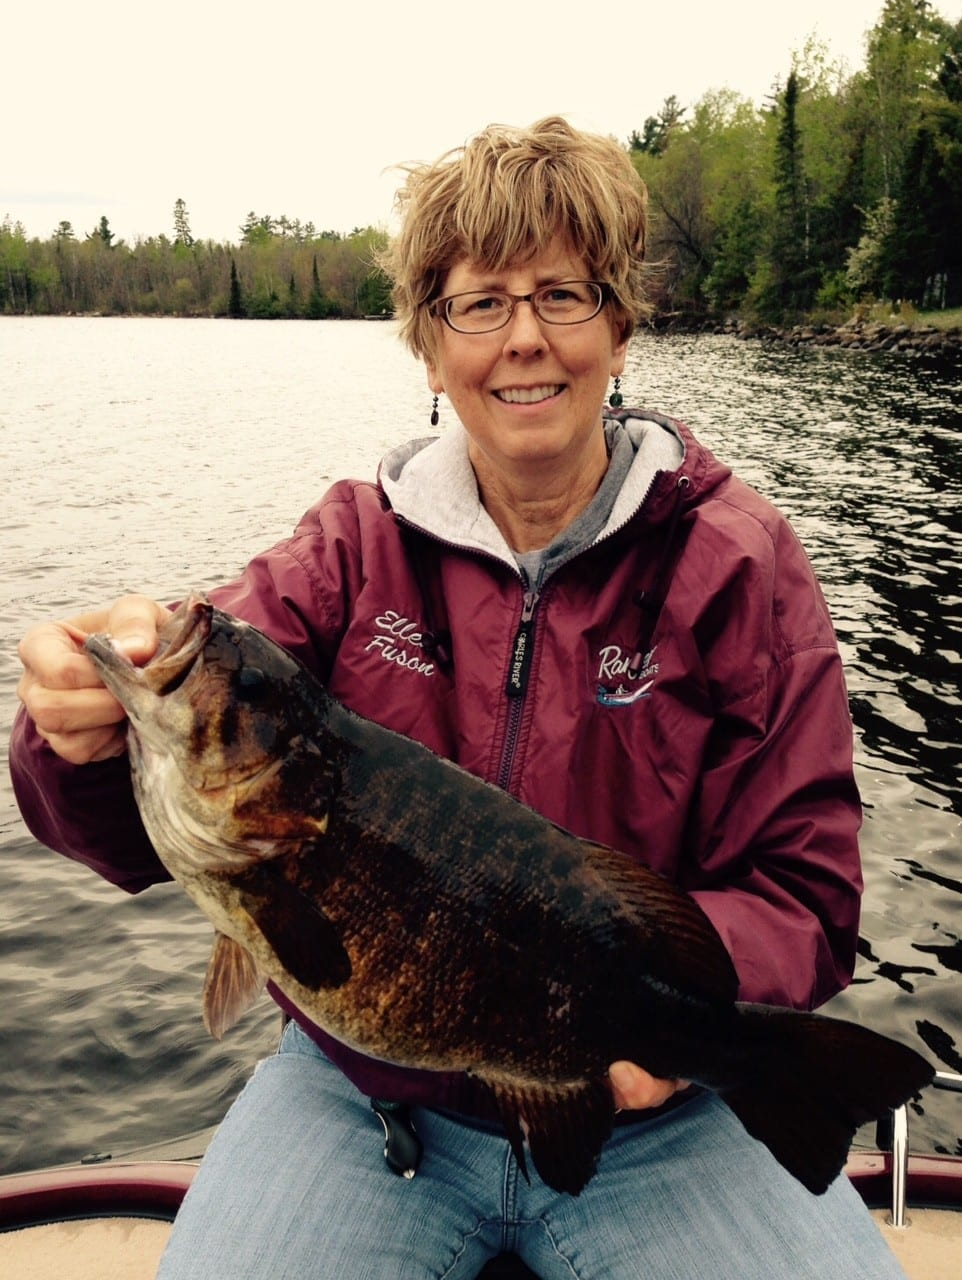 Lake vermilion fishing report for may 2015 everett bay lodge for Lake vermilion fishing reports